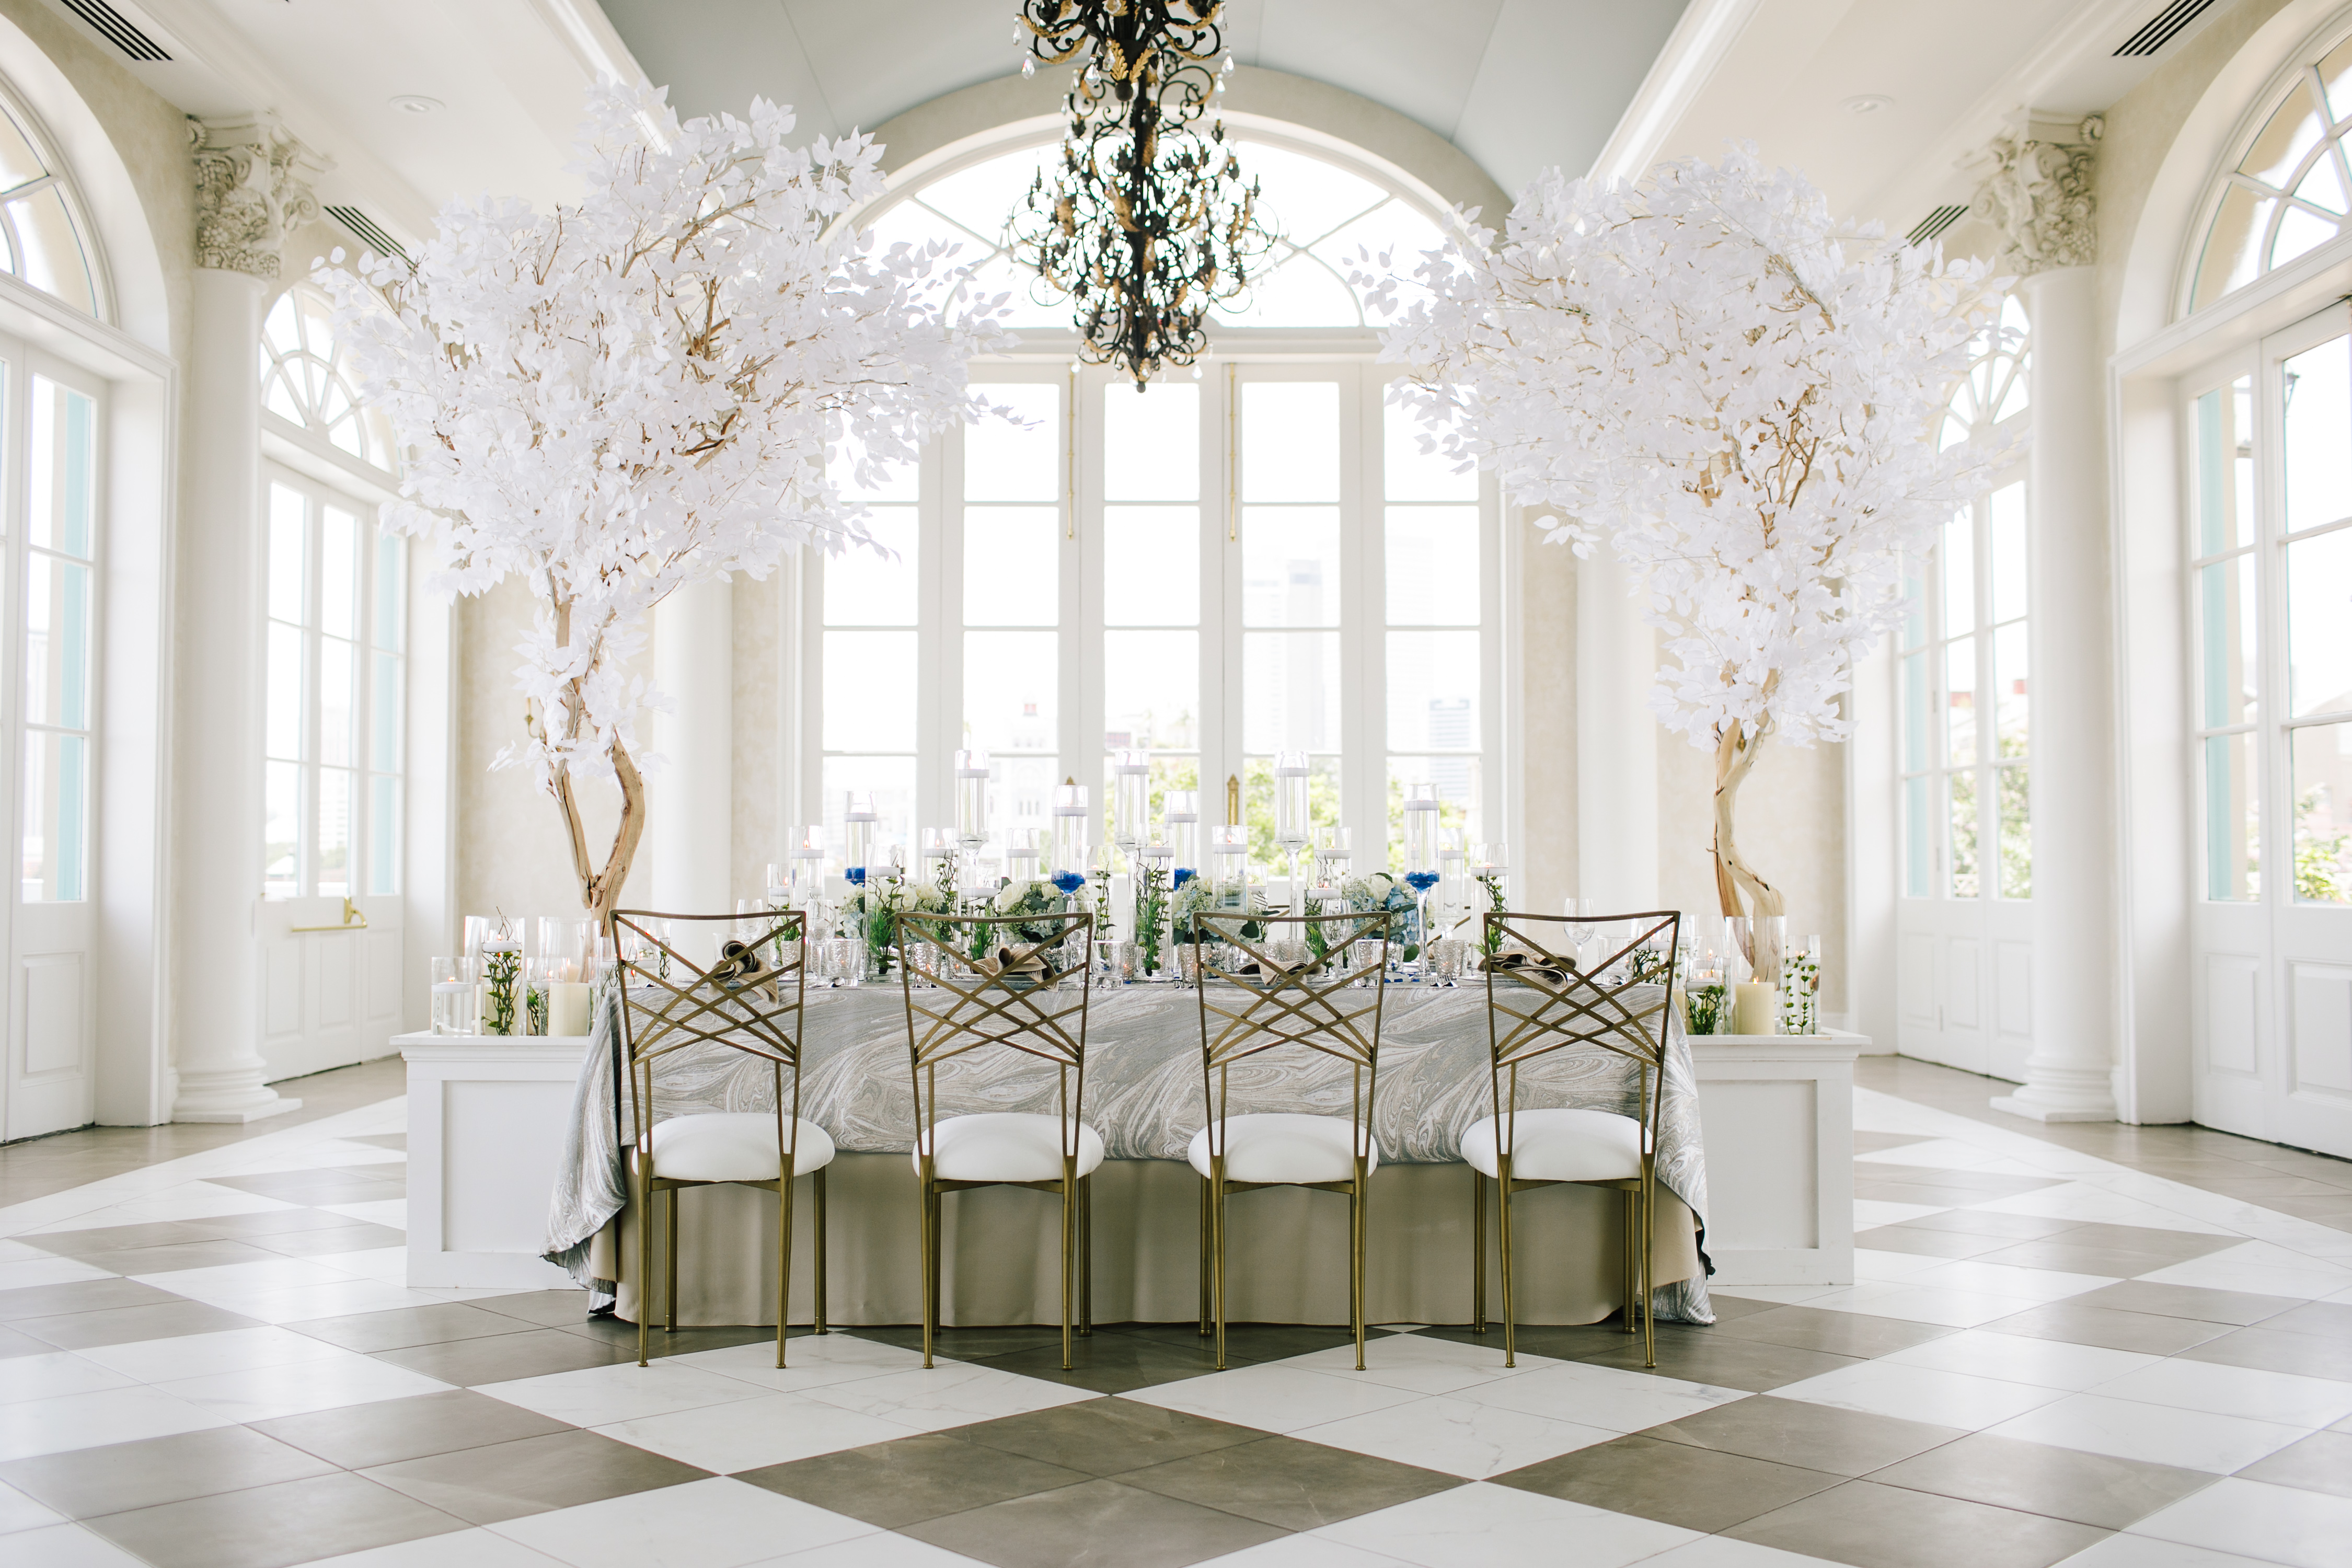 New Orleans Wedding & Event Decor | Furniture | Bars ...